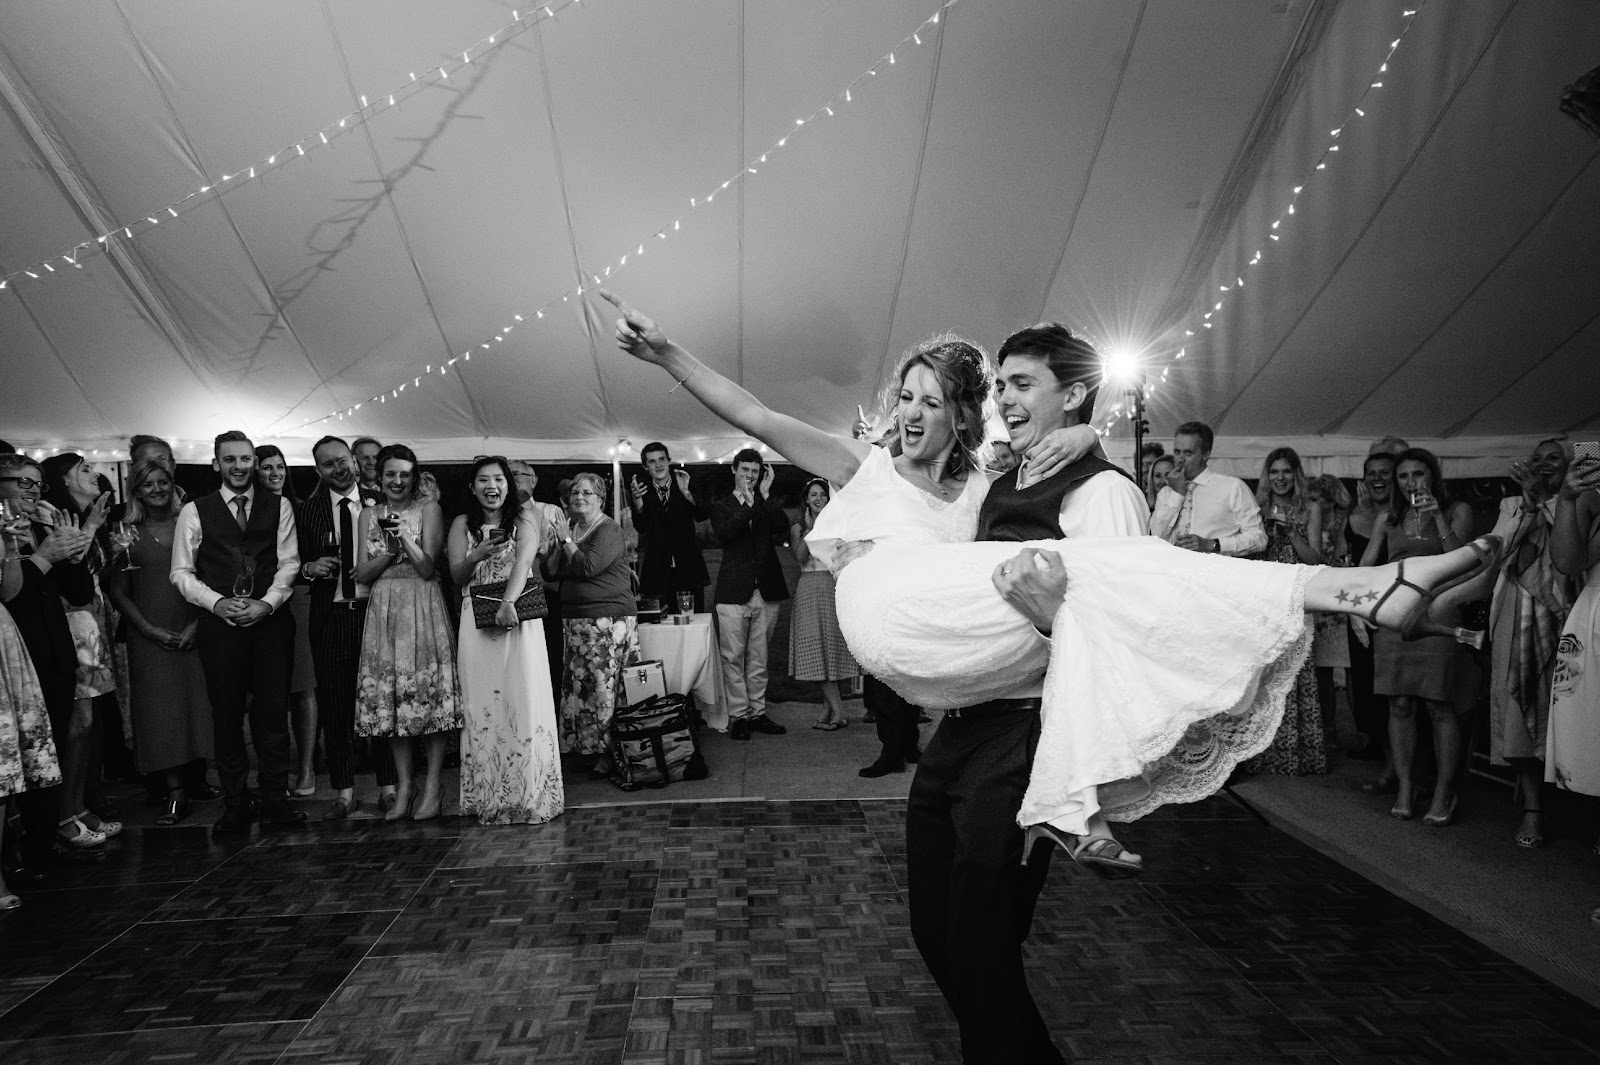 Macintosh HD:Users:Matt:Dropbox:Matthew Scott - Photos:Website:Blog Posts:2019:How to get the best from your wedding photography:Oli-&-Katie-1390.jpg